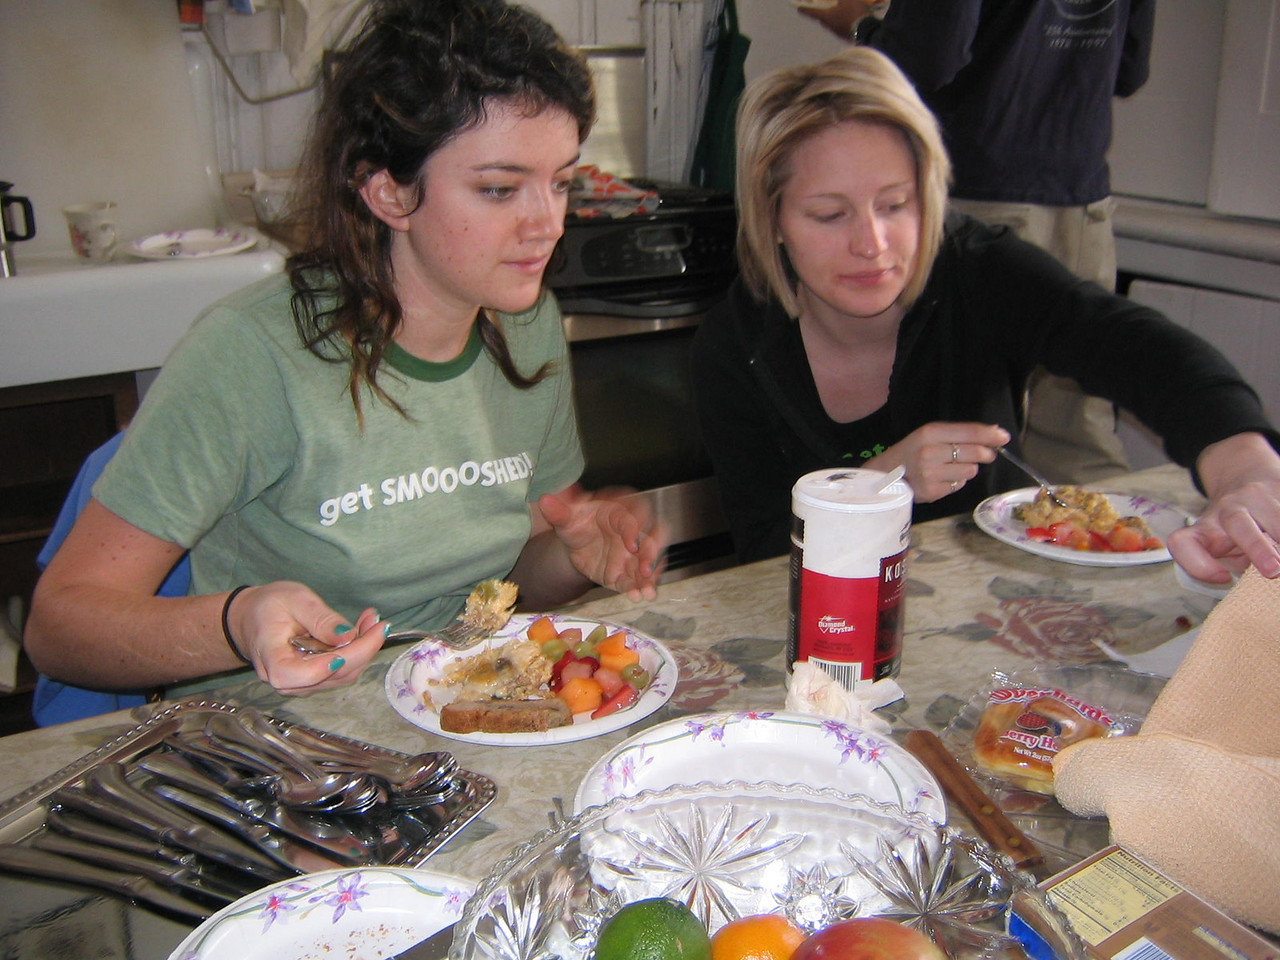 THE MORNING AFTER -- Maria and Aliceann reach for the protein.